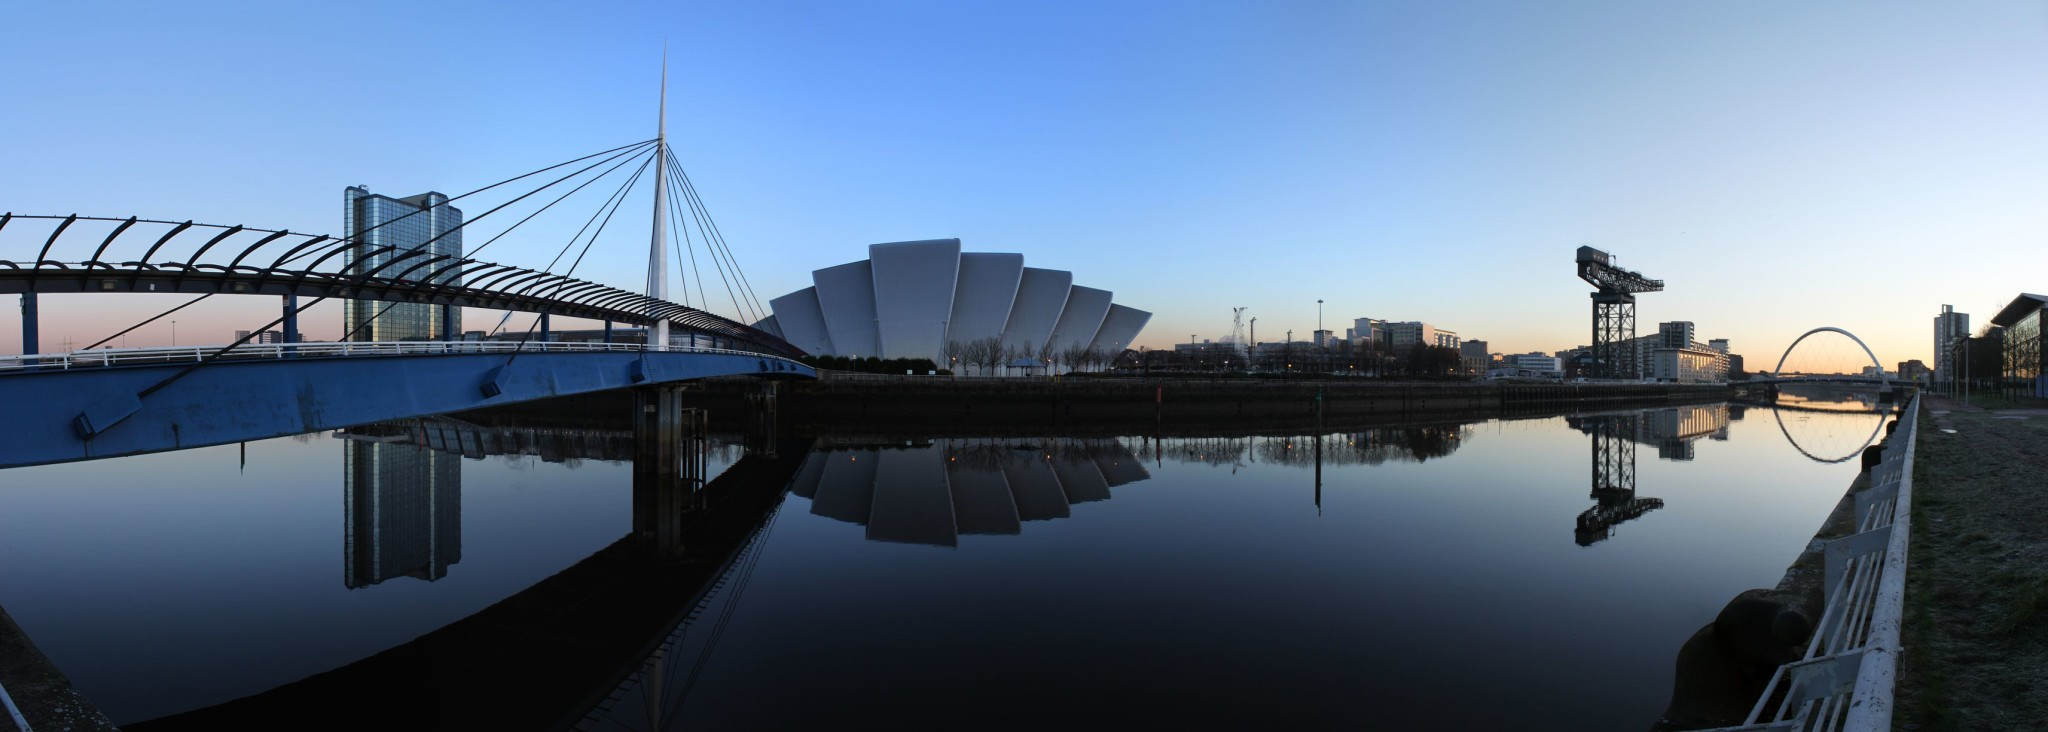 Glasgow's River Clyde in Scotland